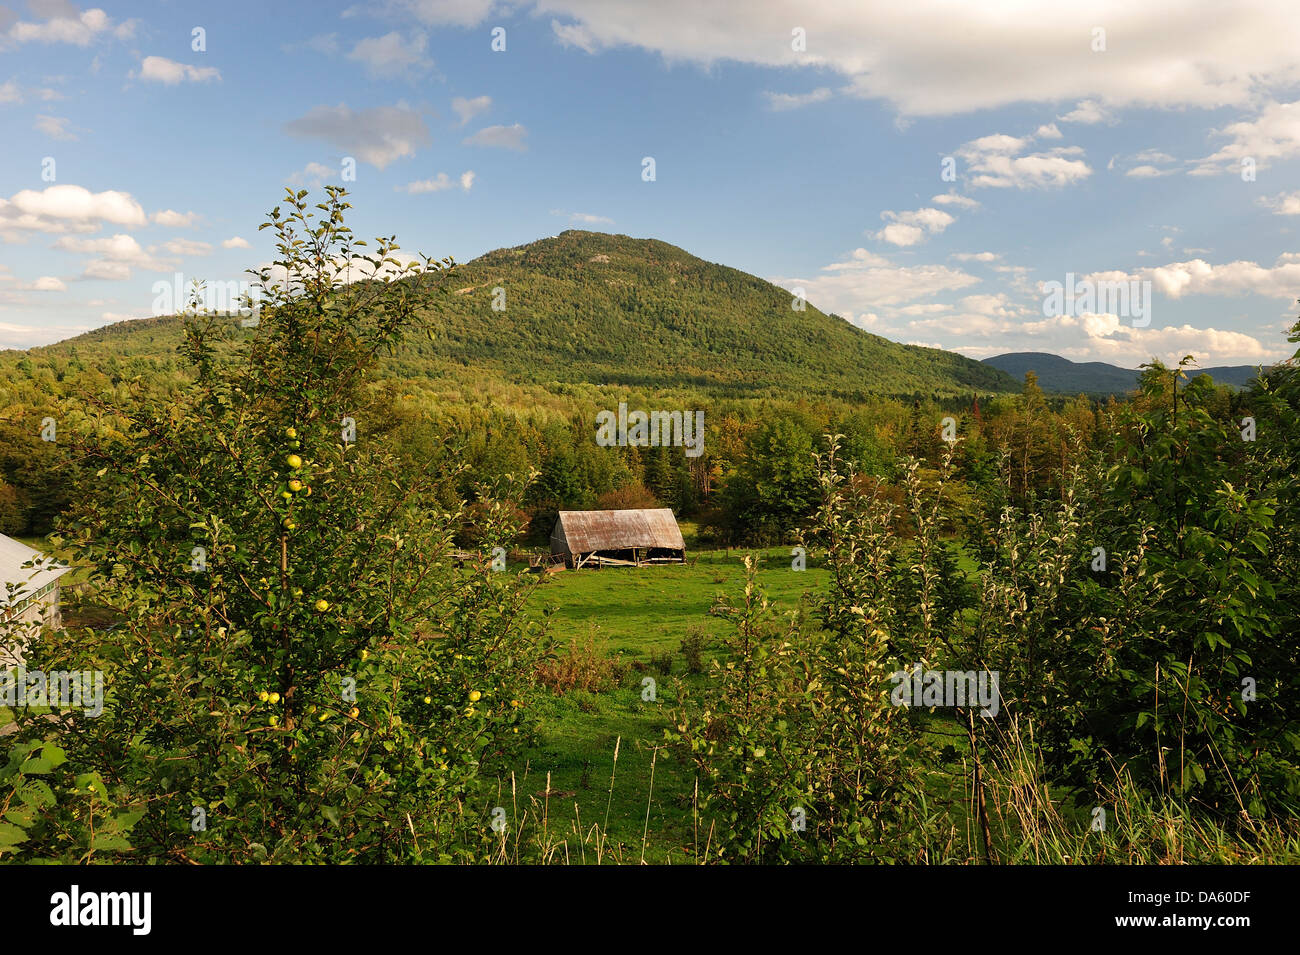 Canada Eastern Quebec Rural Townships Stock Photos Canada - 7 things to see and do in quebecs eastern townships